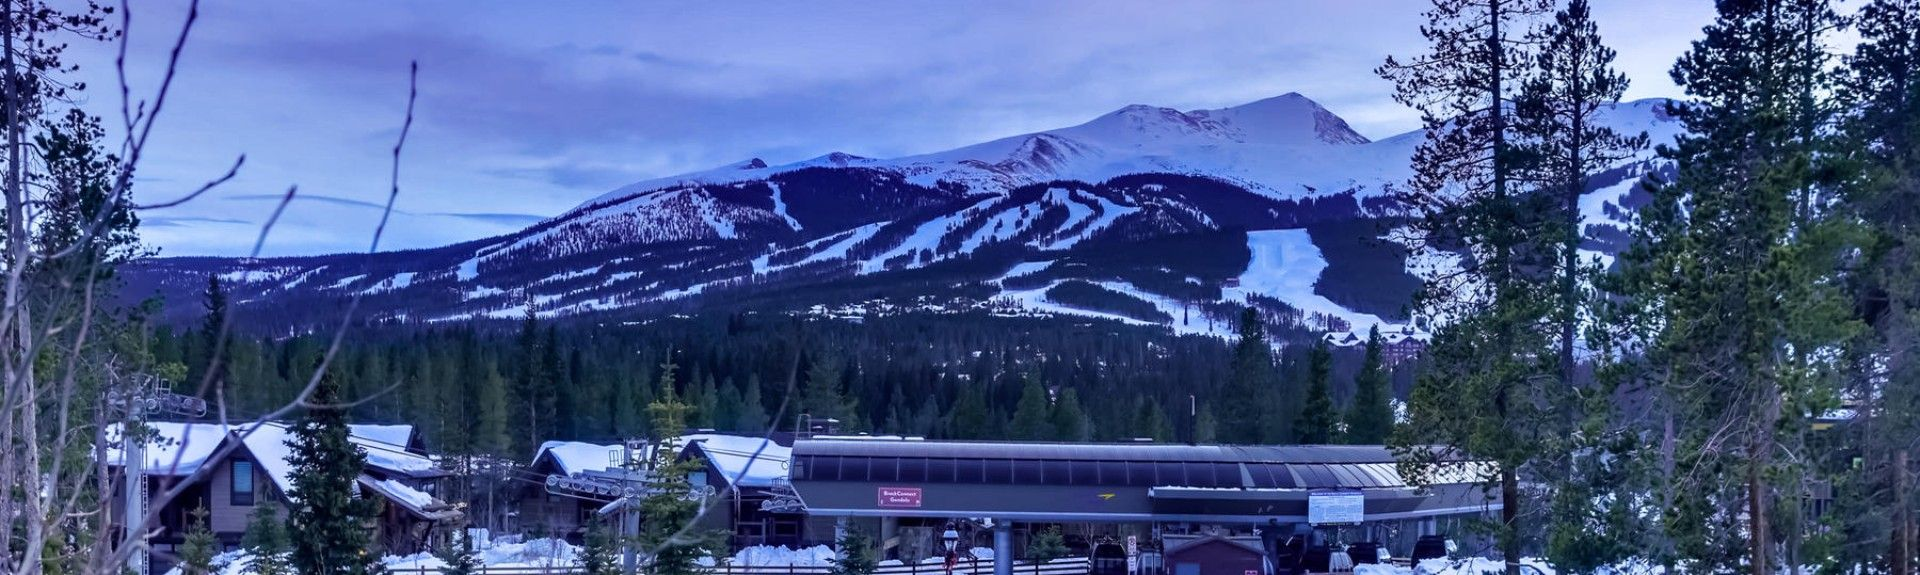 Shock Hill (Breckenridge, Colorado, Stati Uniti d'America)